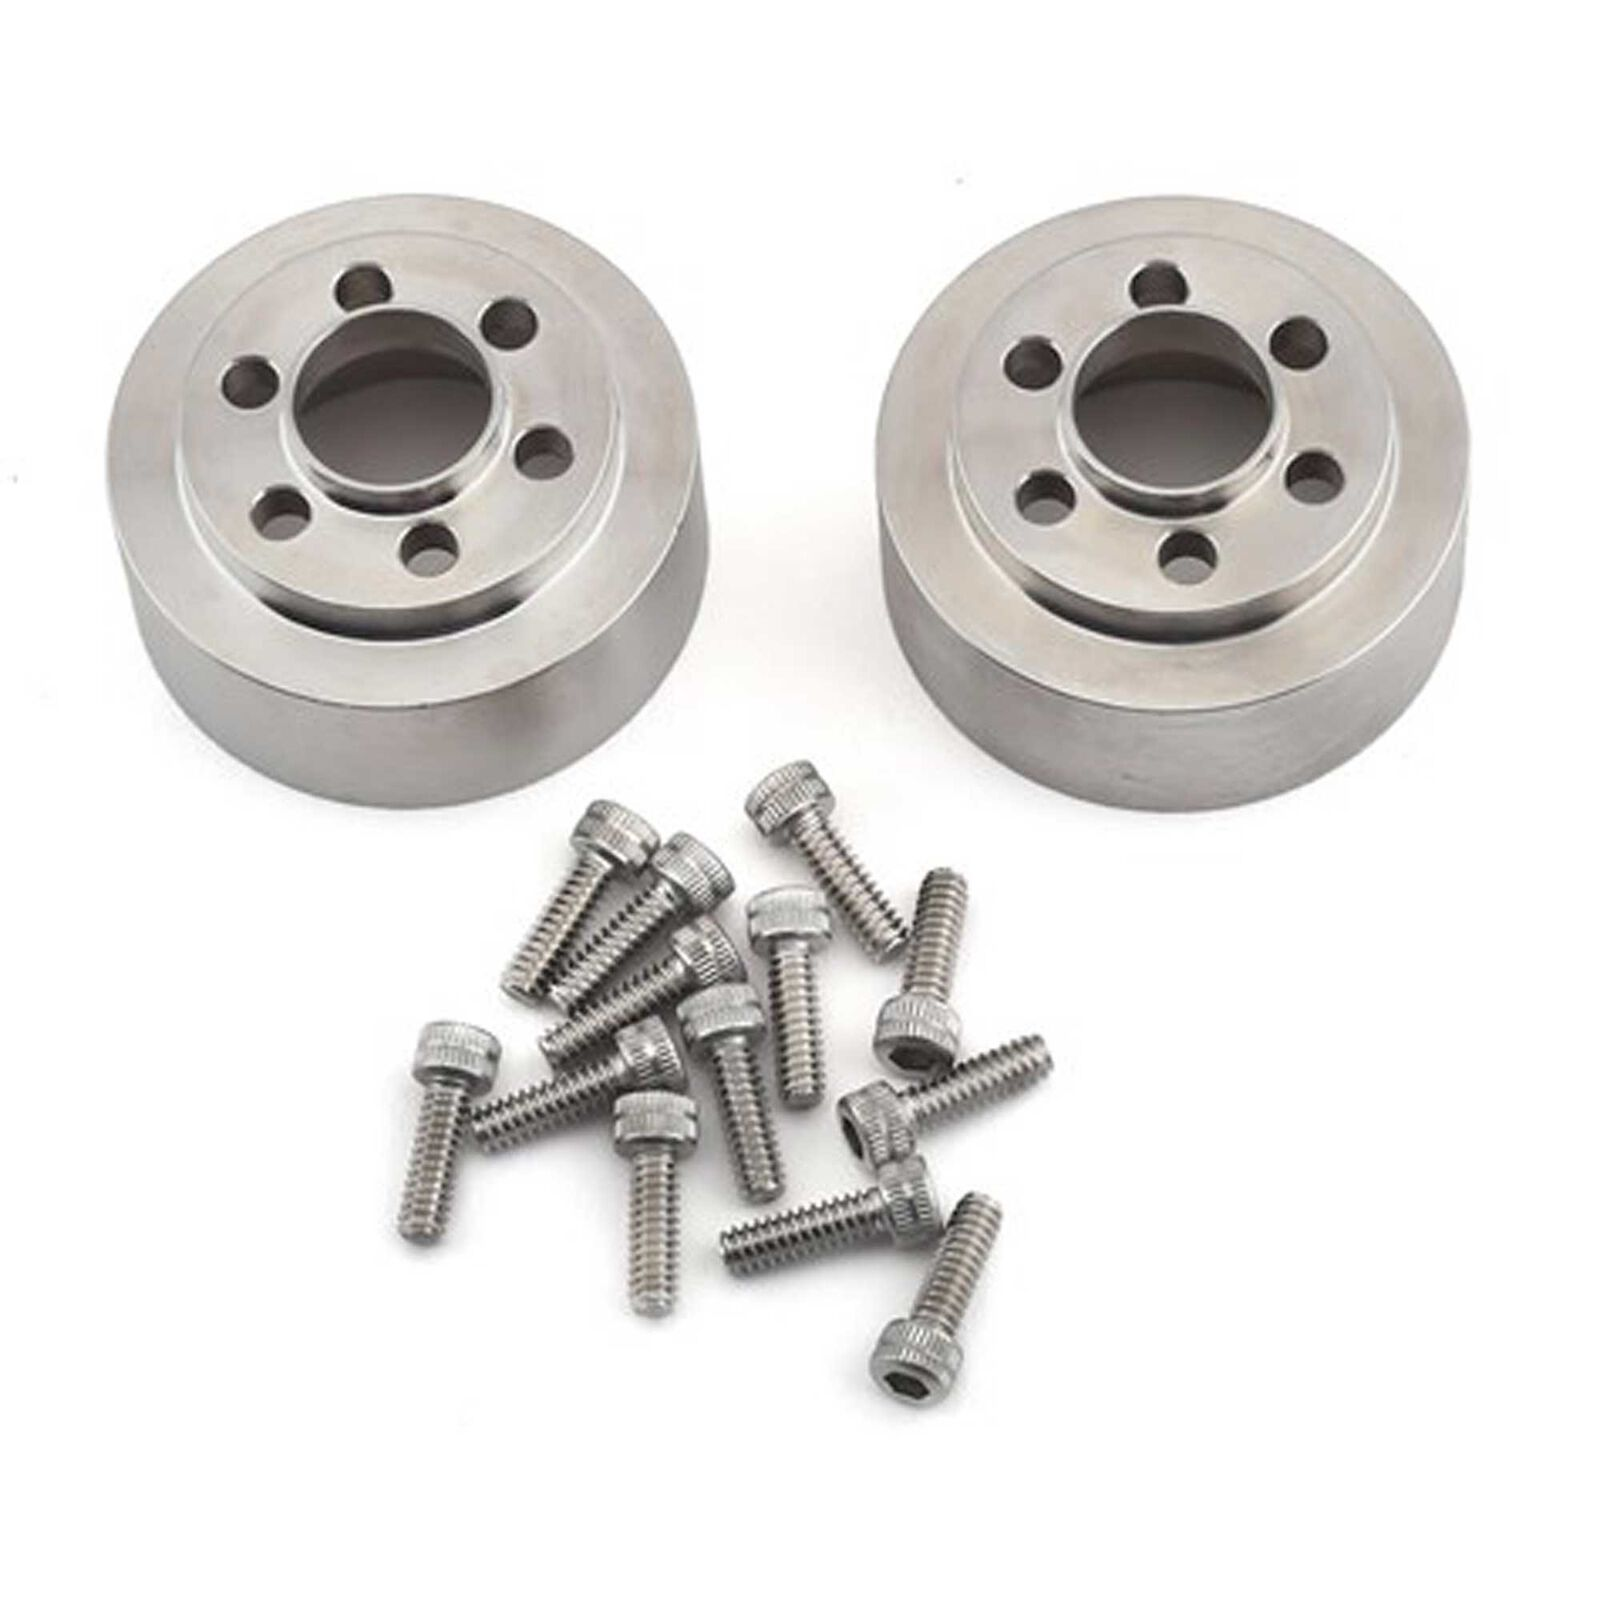 1.9 Stainless Brake Disc Weights